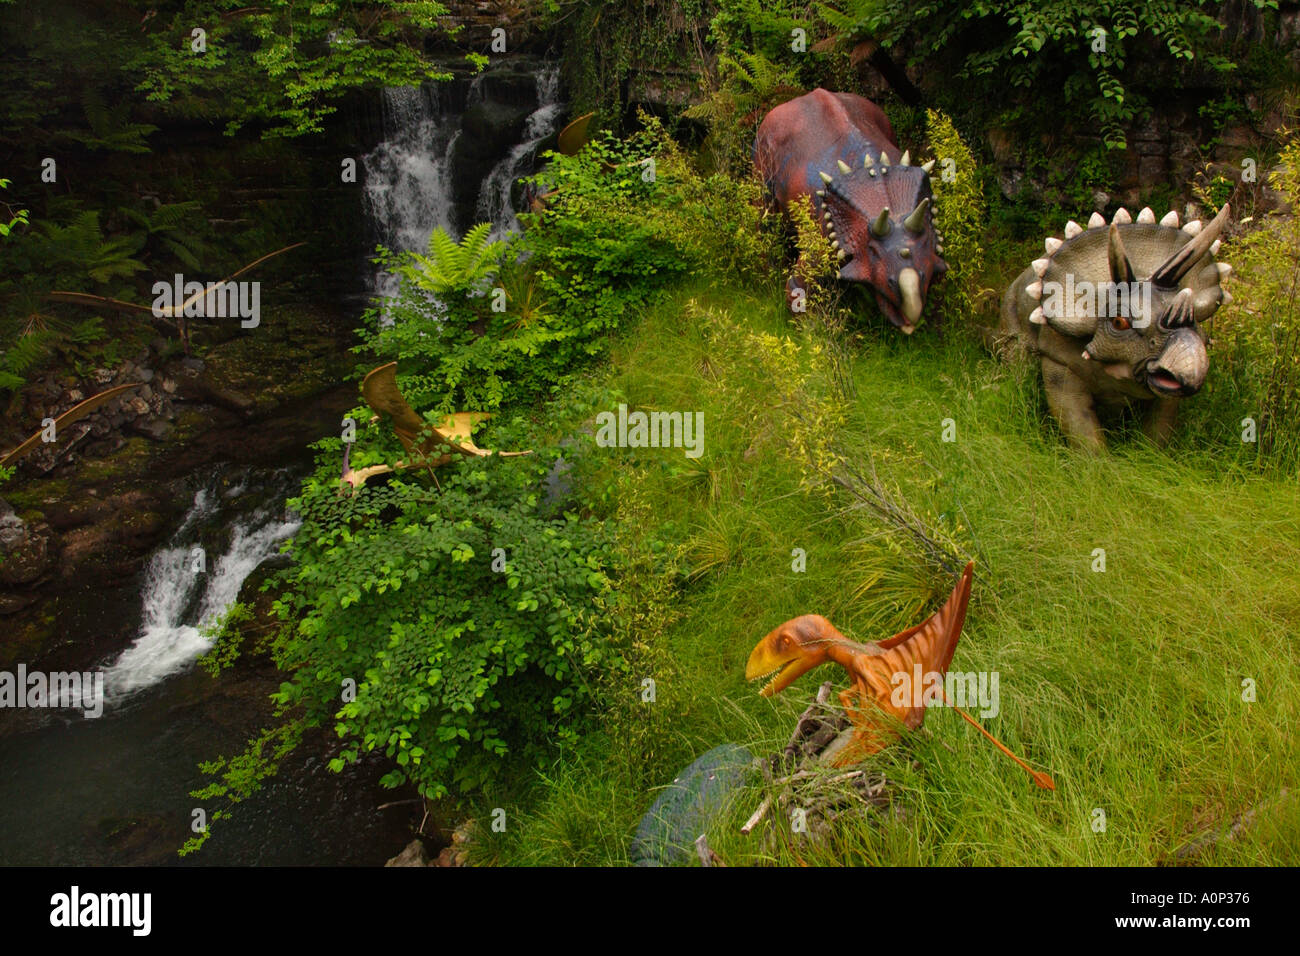 Selection of dinosaurs in the Worlds biggest dinosaur park at Dan yr Ogof in the Brecon Beacons National Park Powys Wales UK - Stock Image